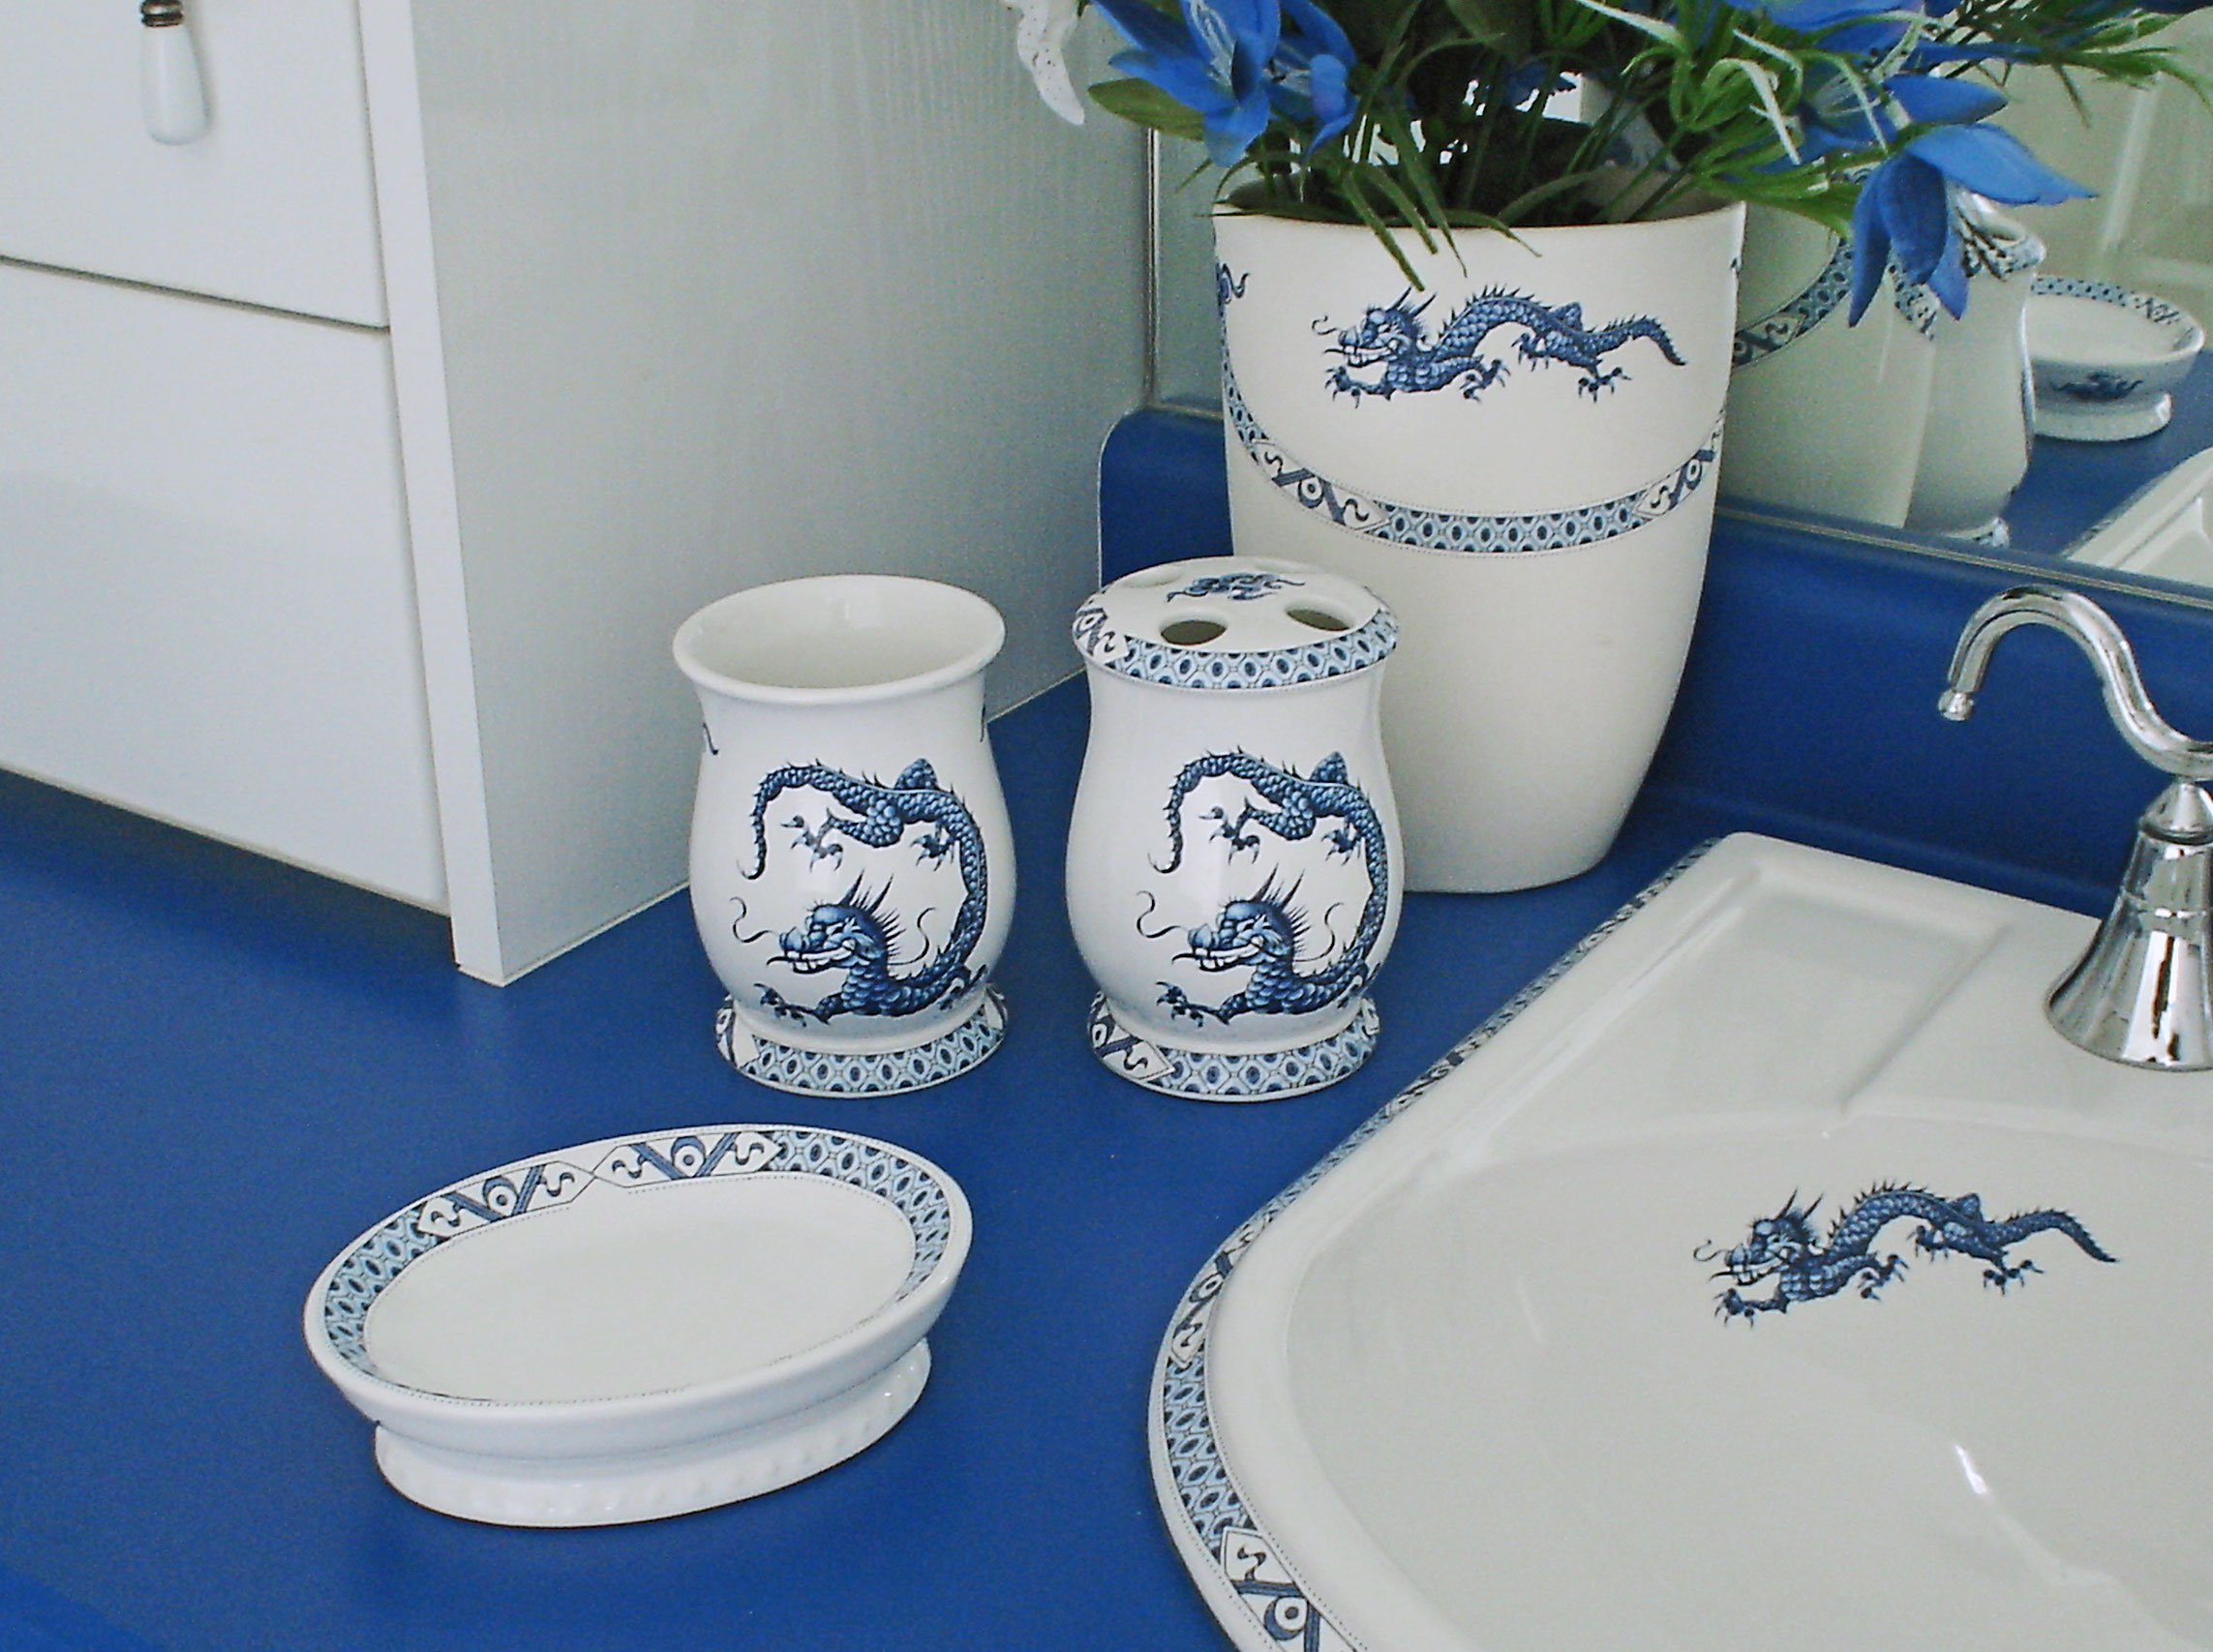 Dragon Bathroom Accessories Blue And White Porcelain Bathroom Accessories My Web Value